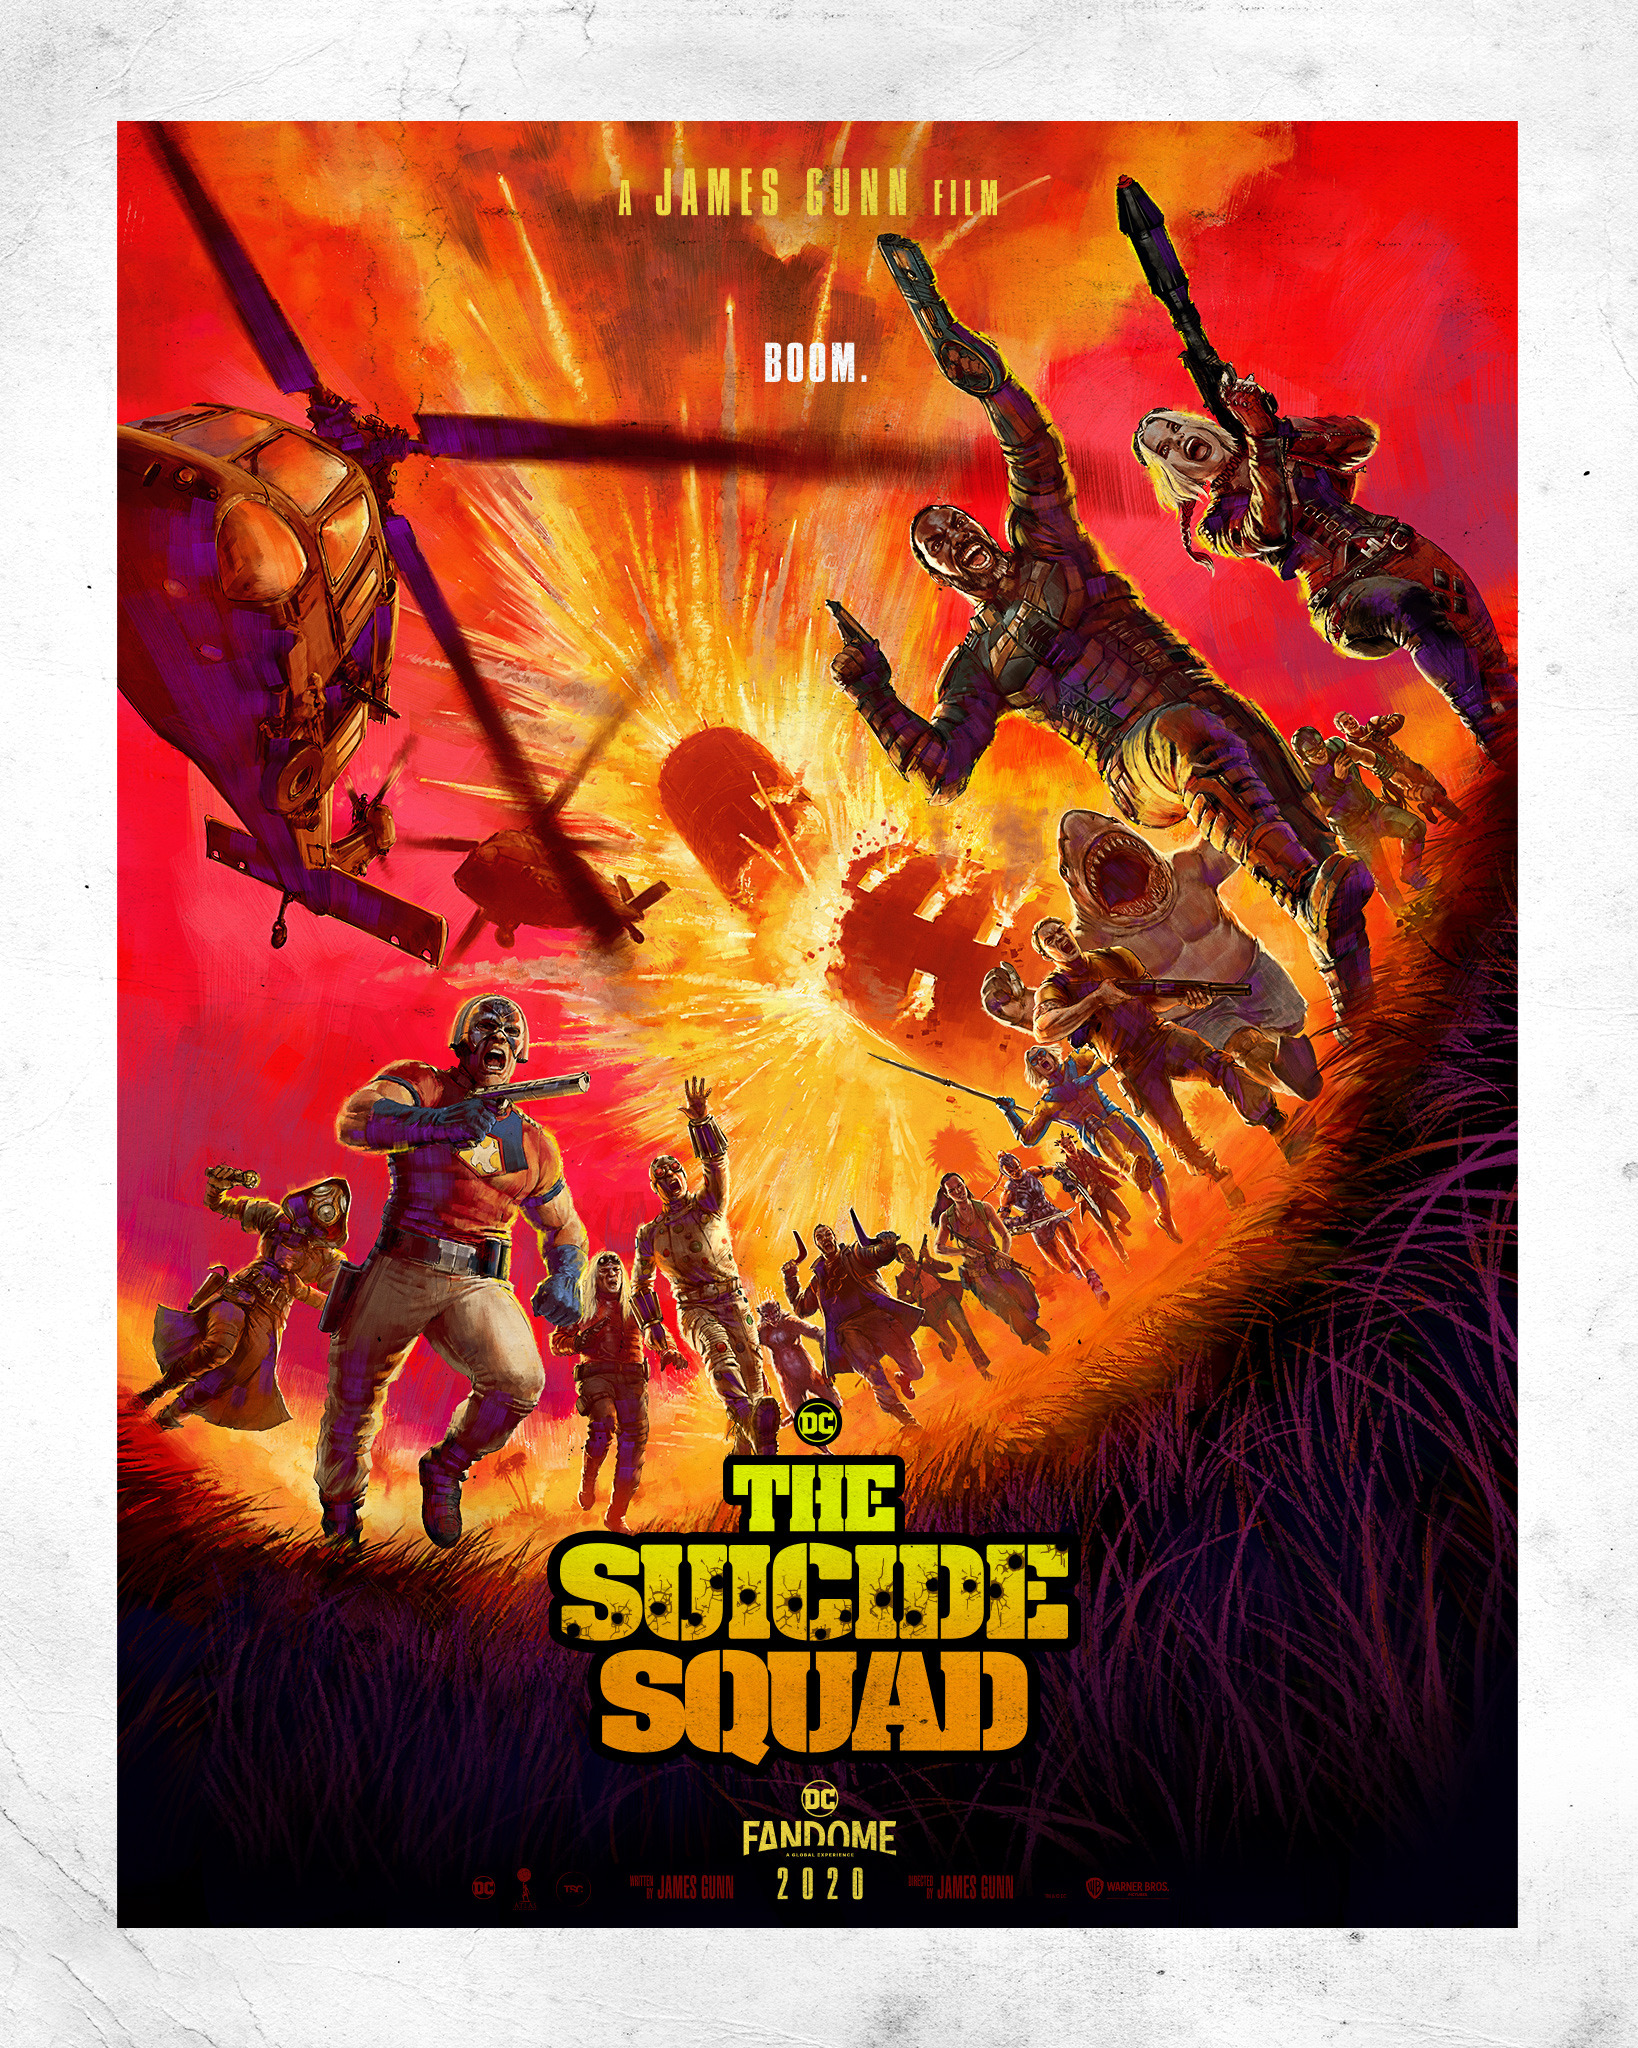 The Suicide Squad Official Movie Poster